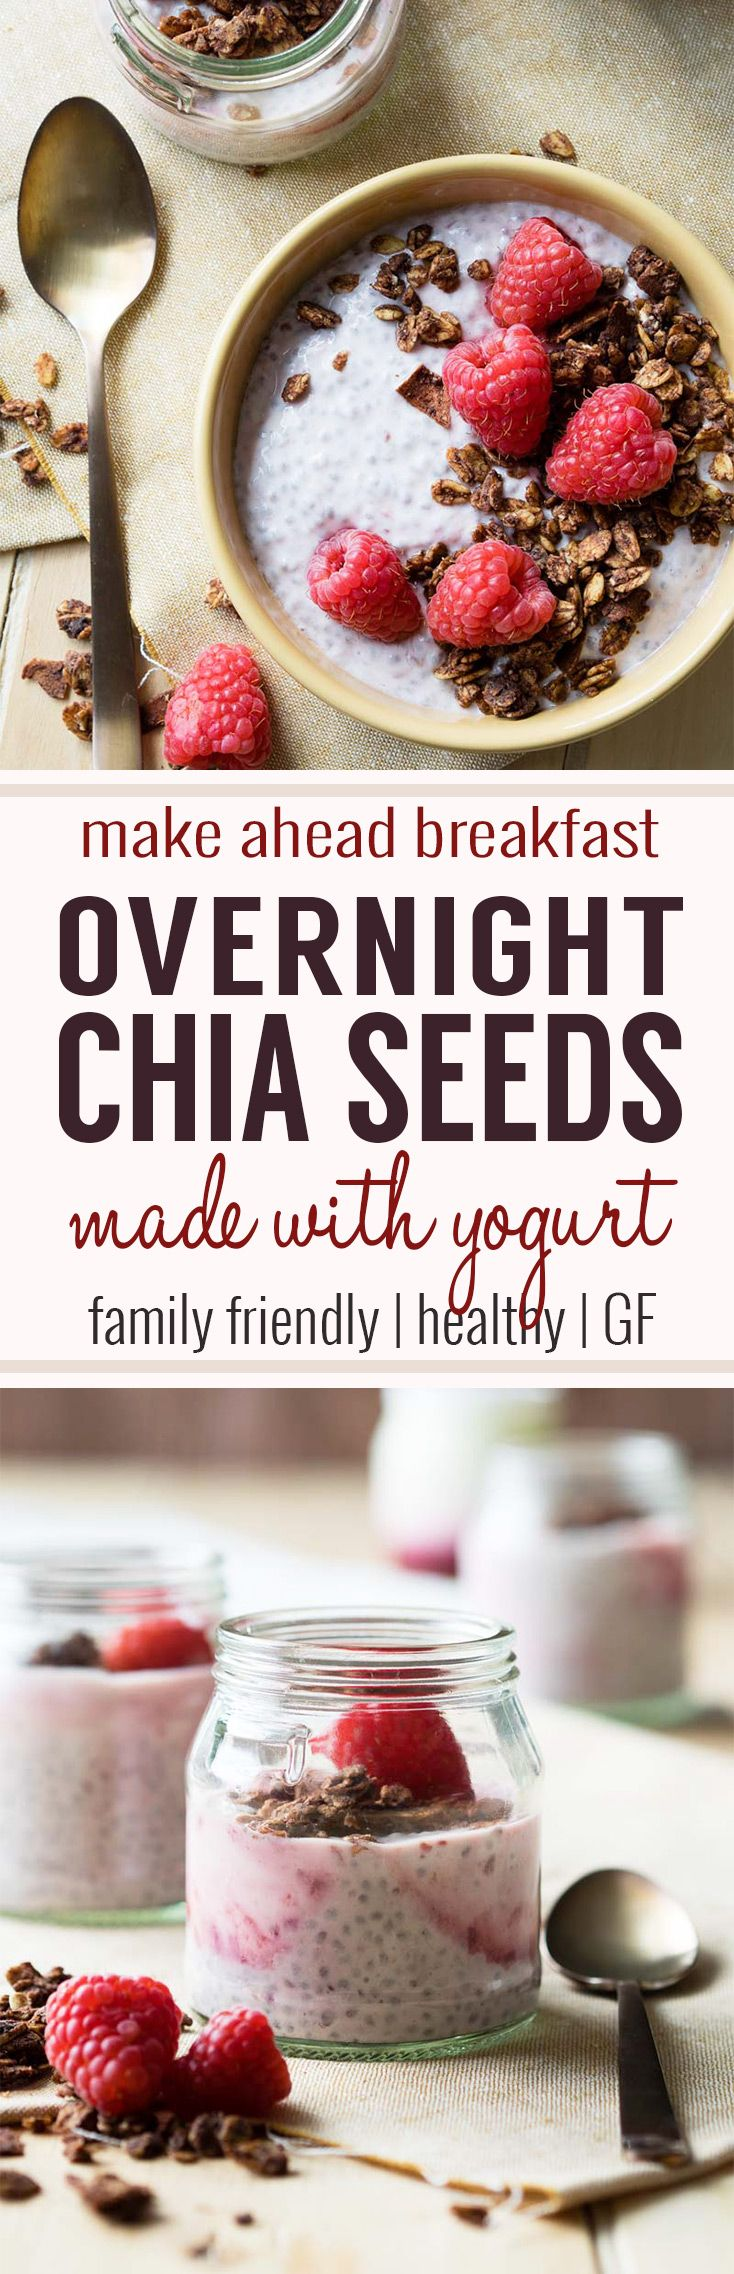 Overnight Chia Seeds in Yogurt (GF) - a healthy and delicious breakfast. If you can keep your eyes open for an extra 30 seconds before bed, put yogurt, milk and chia seeds in a bowl, give it a stir, and place it in the refrigerator. As you get your sleep, the chia seeds do their magic and transform into a nourishing breakfast for the entire family. #healthybreakfast #chiaseeds #chiaseedpudding